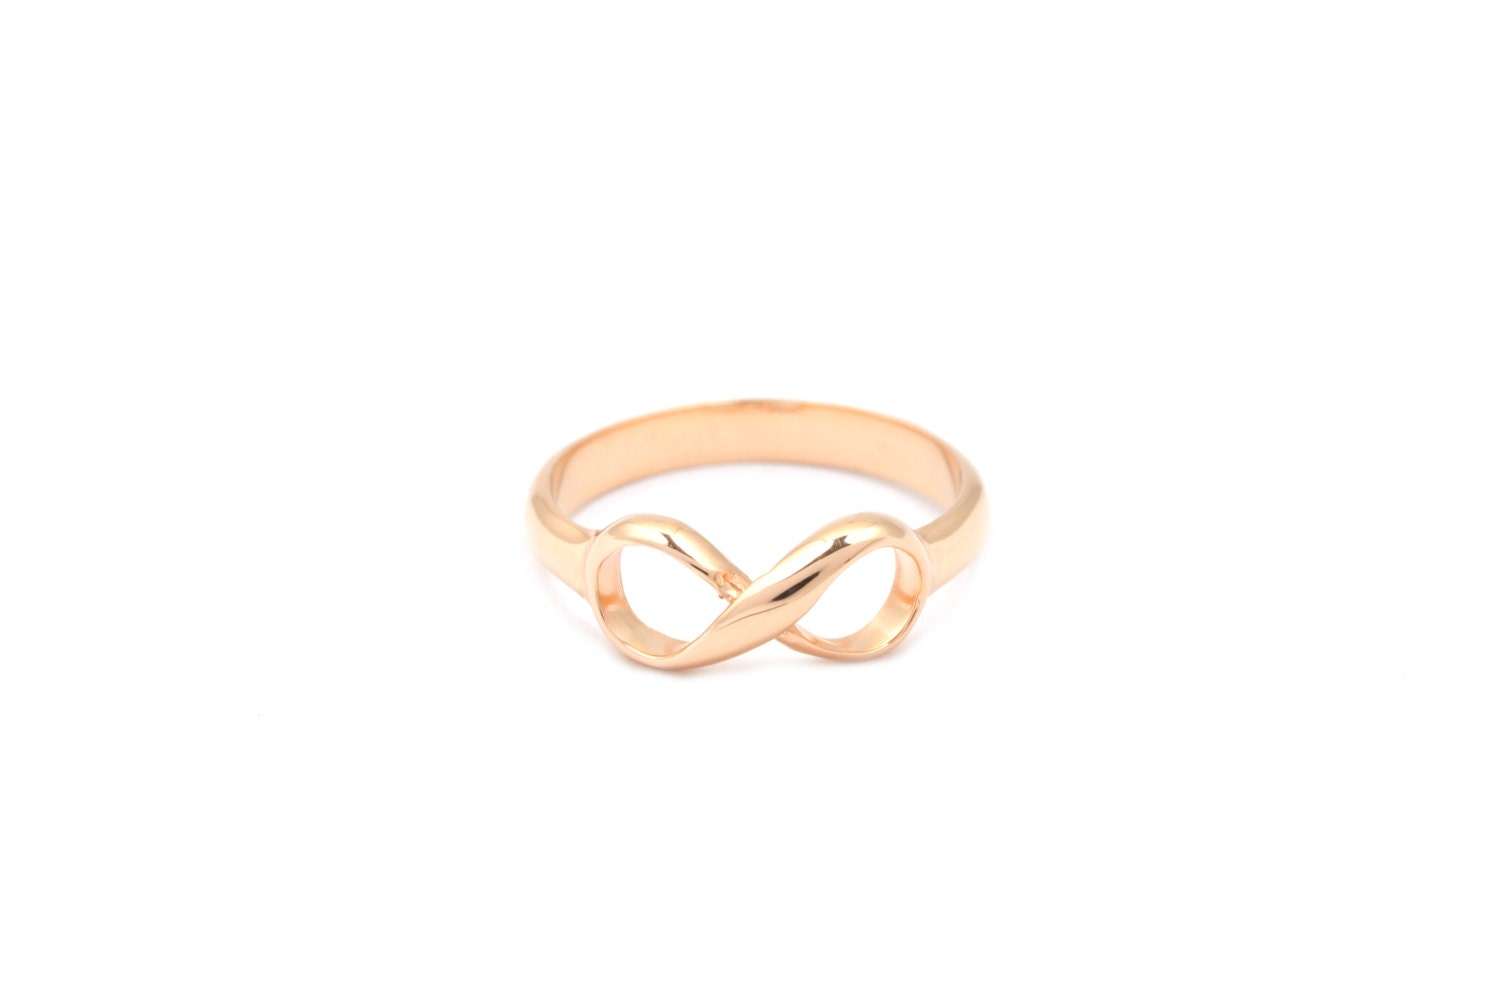 Tiffany & Co Inspired Infinity Ring Rose gold over by MimicDesign